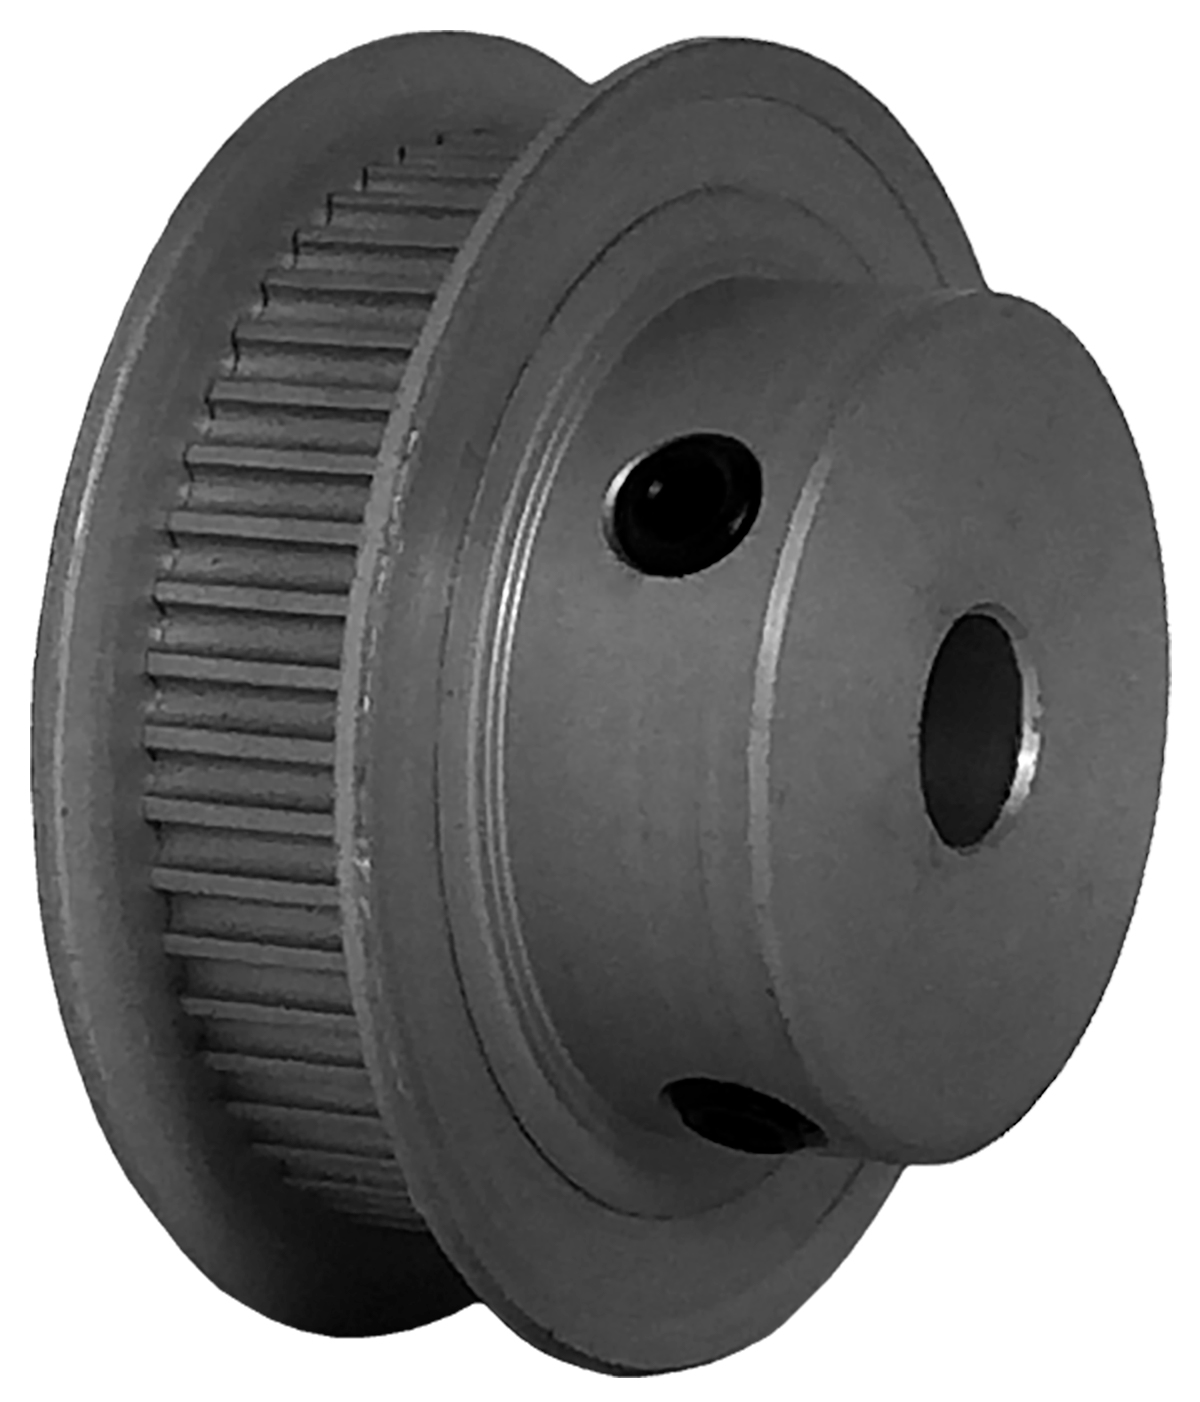 50-2P06-6FA3 - Aluminum Powerhouse® Pulleys